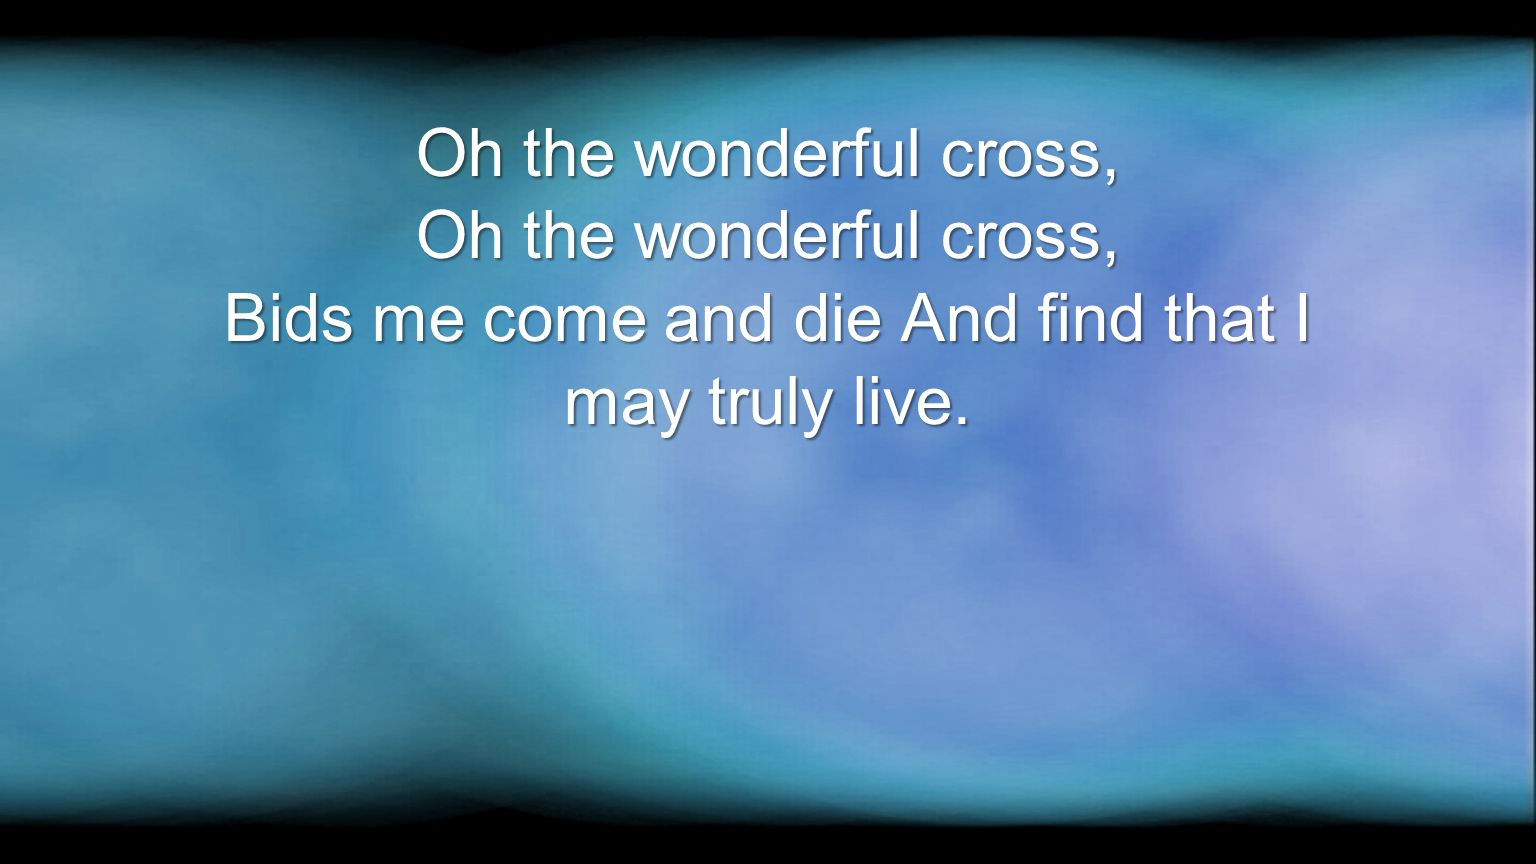 Oh the wonderful cross, Bids me come and die And find that I may truly live.